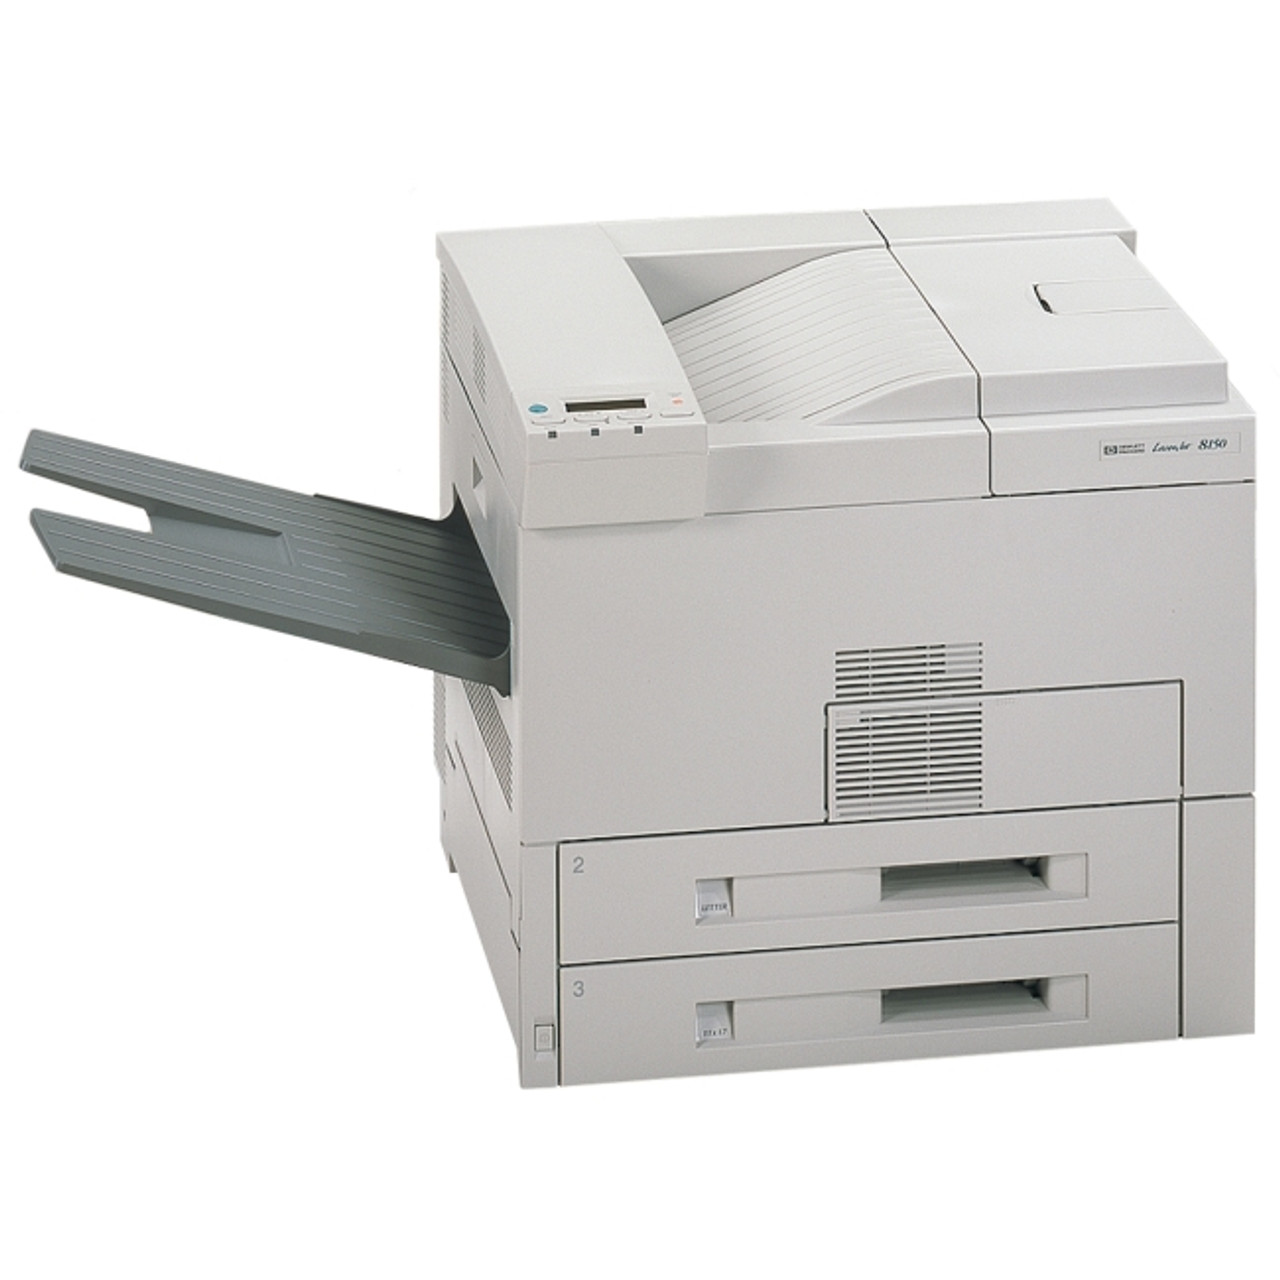 HP LaserJet 8100dn - c4216a - HP Laser Printer for sale